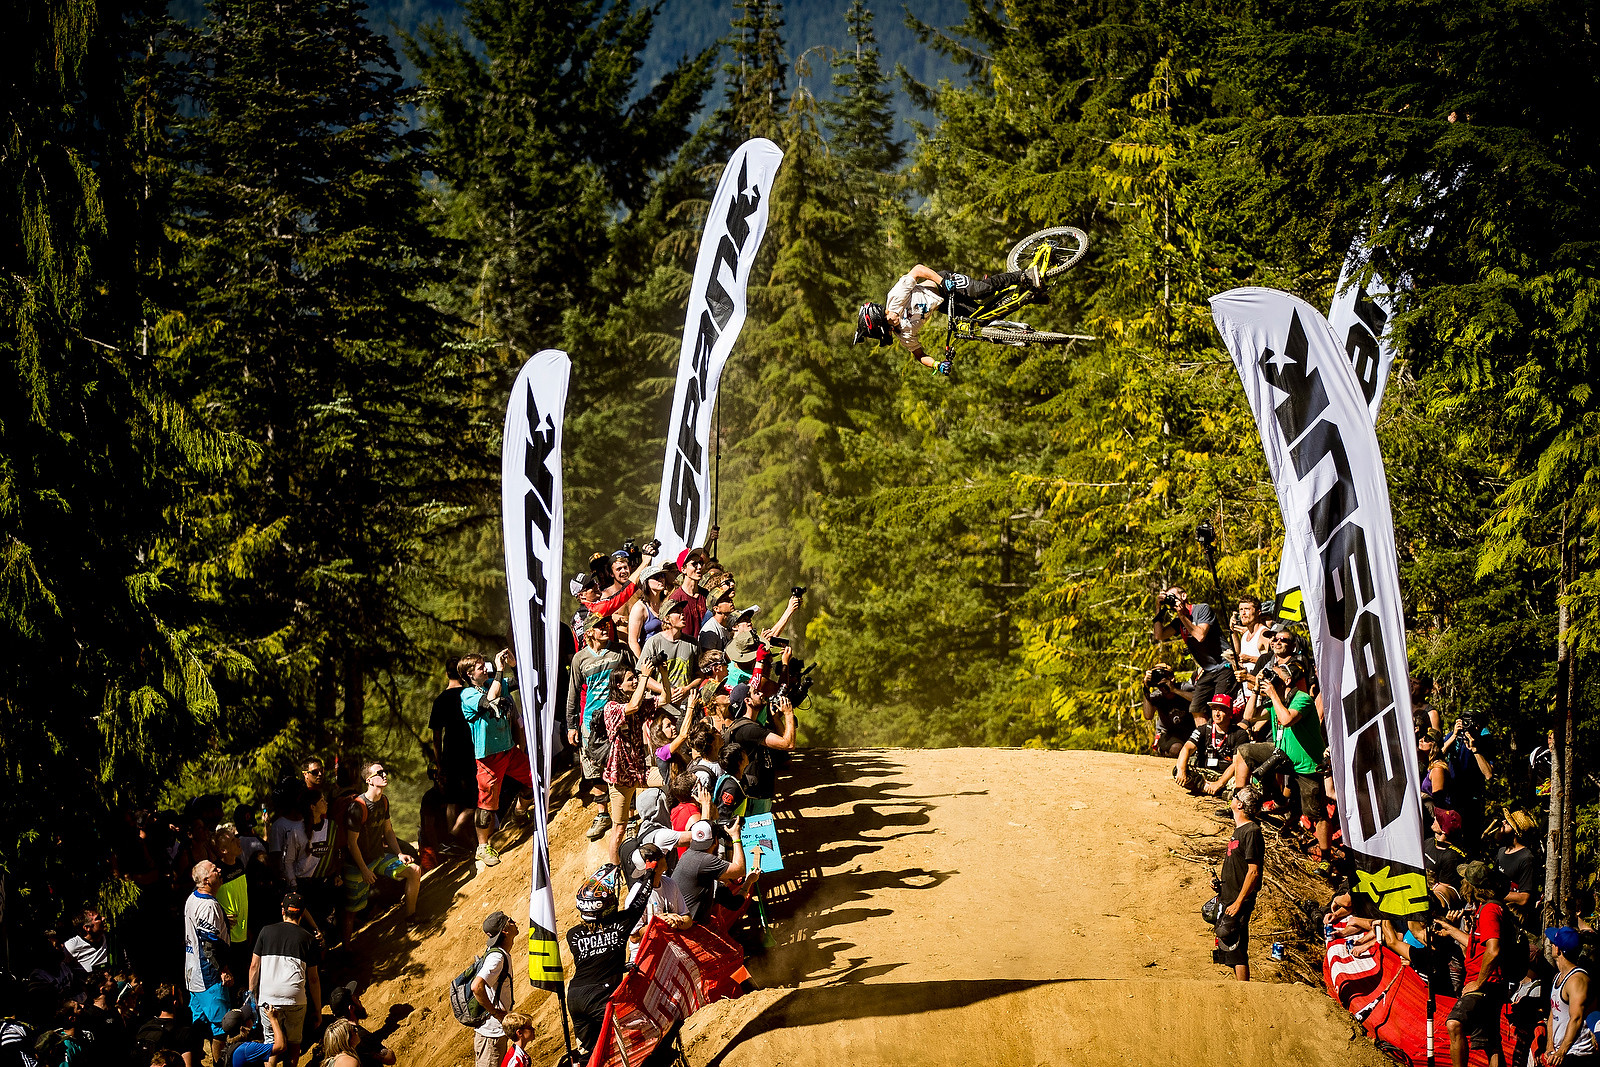 Confused Crooked Contortionist Gets Corked - Whip Off World Champs Photo Blast - Mountain Biking Pictures - Vital MTB